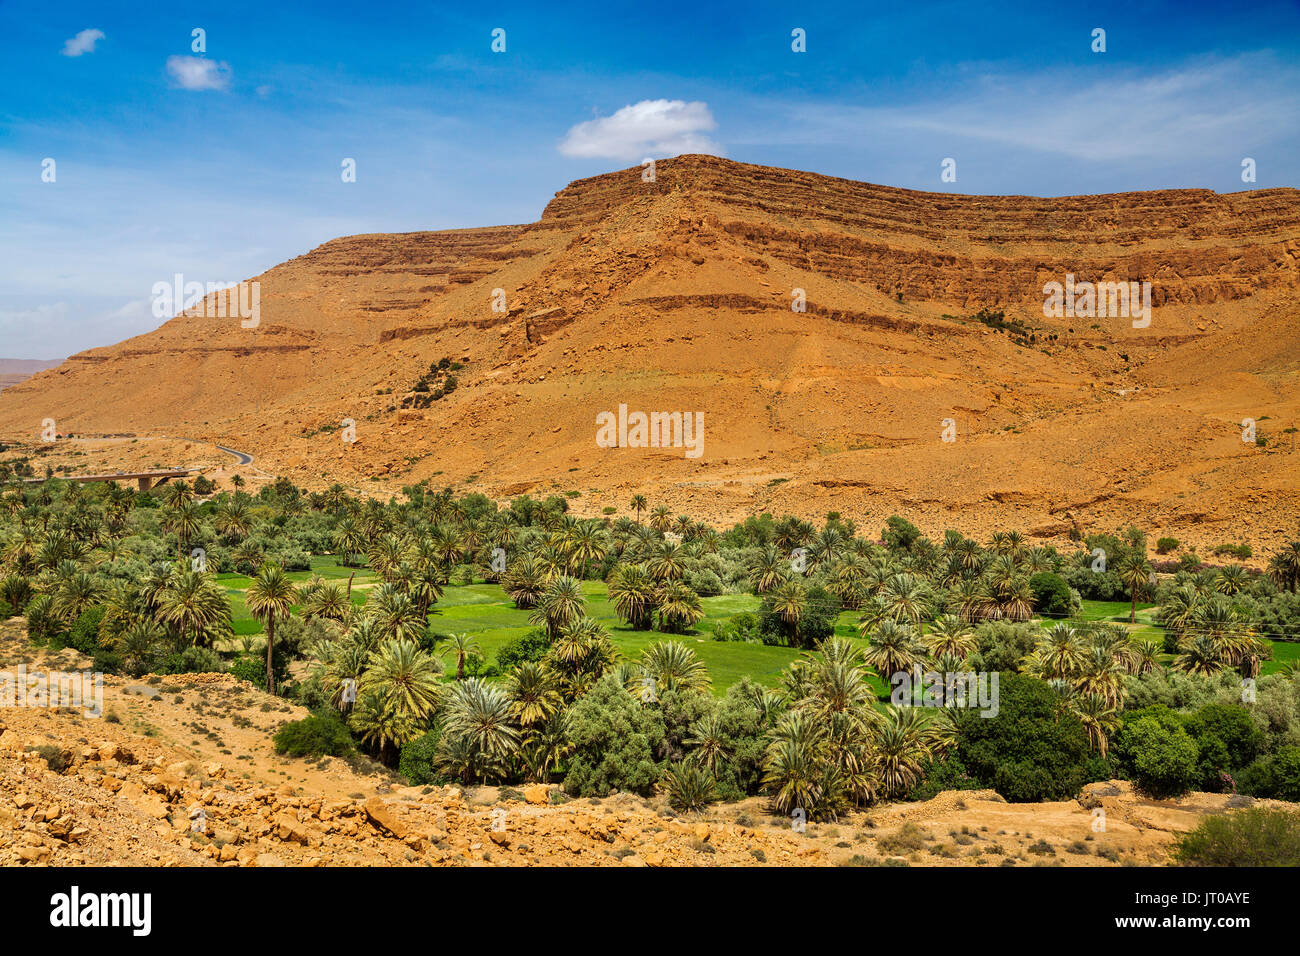 Agriculture. Oasis with palm trees Ziz Valley, Ziz River ... Oasis Geography